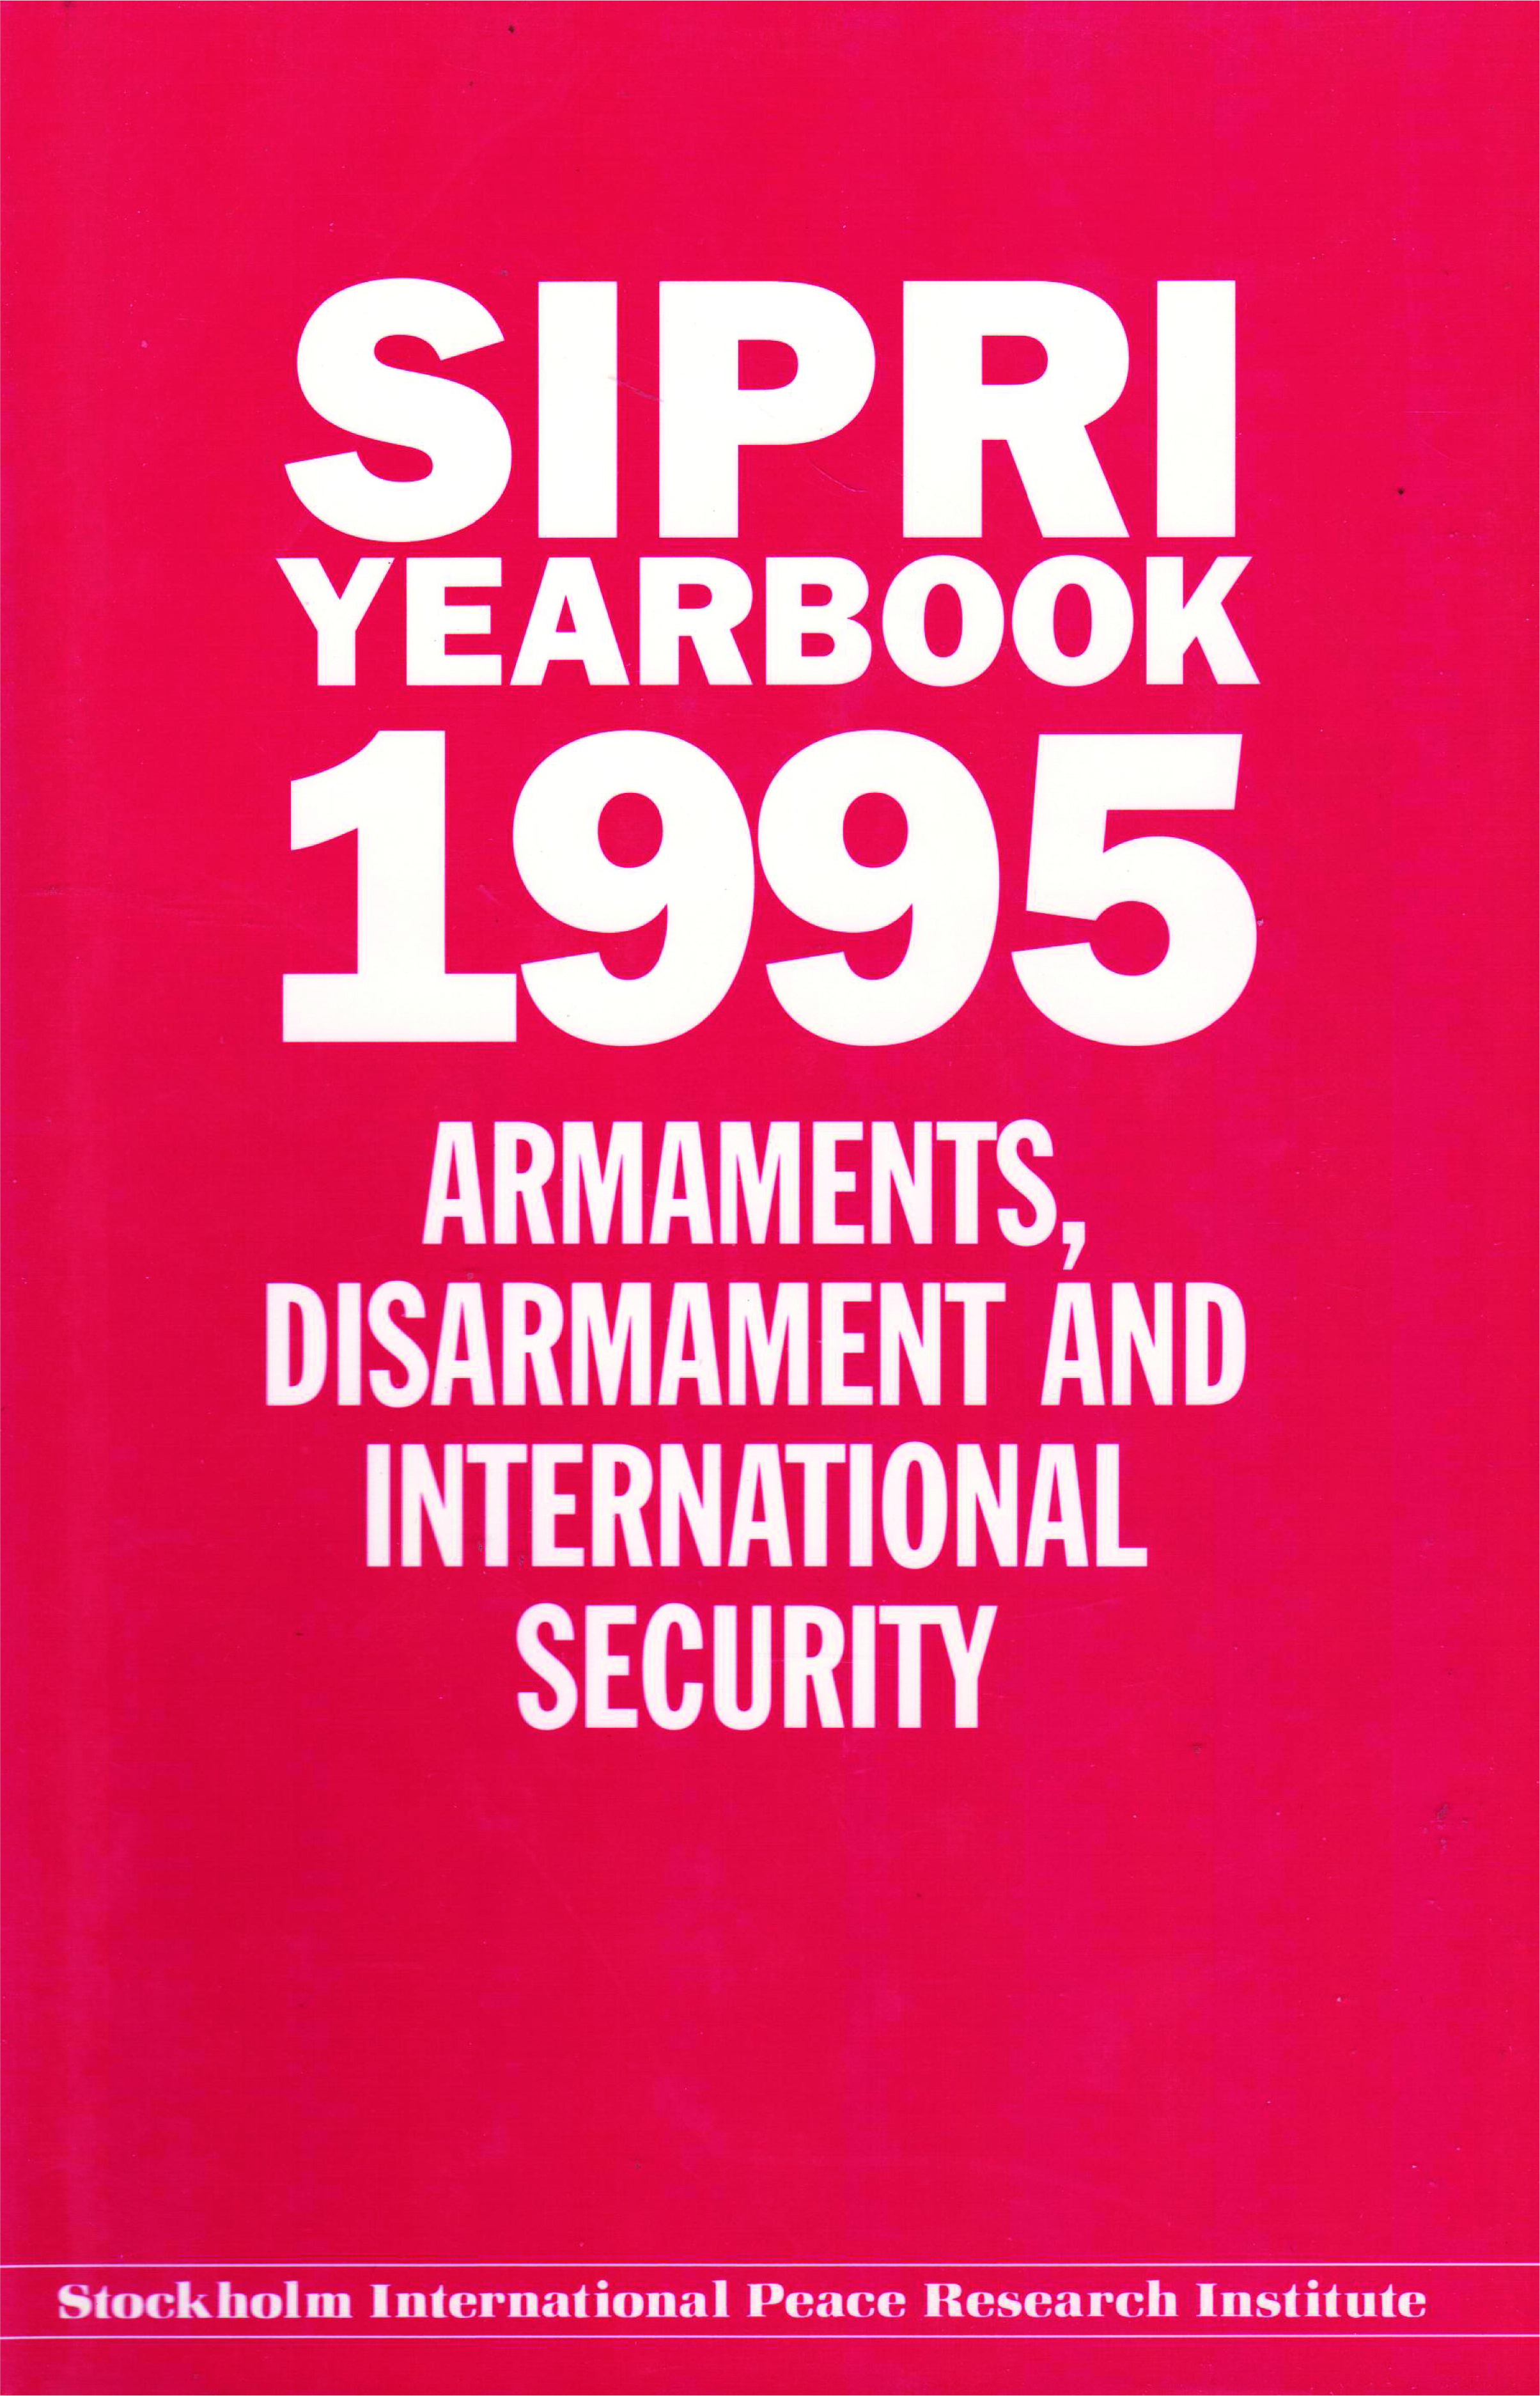 SIPRI yearbook 1995 cover